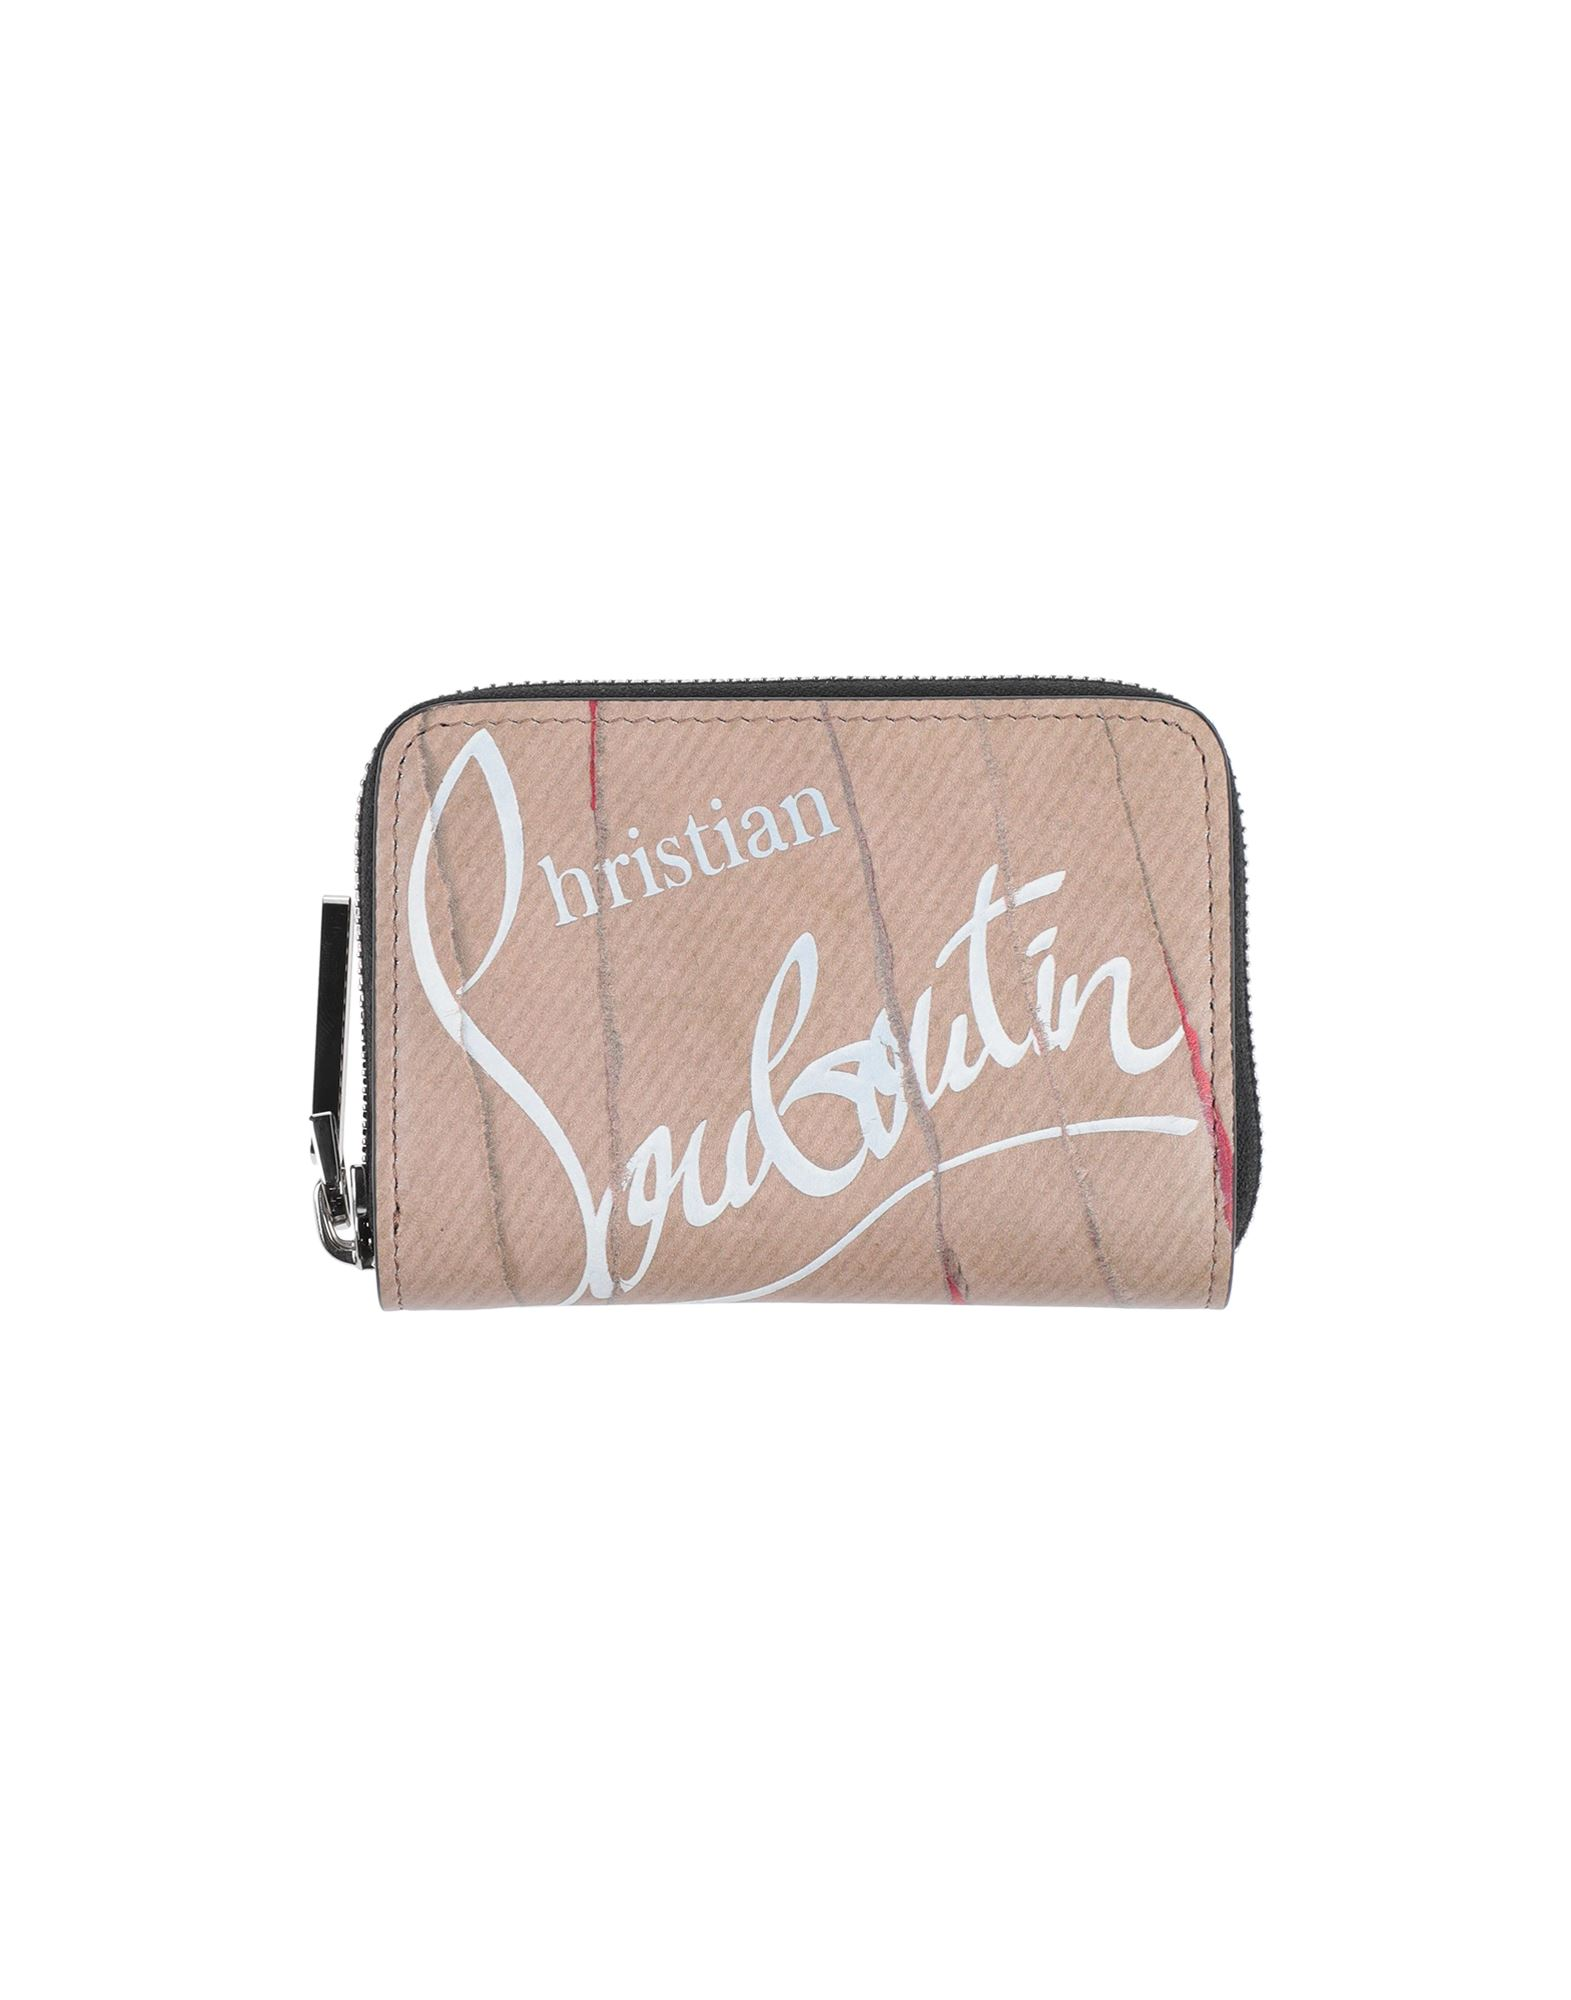 CHRISTIAN LOUBOUTIN Coin purses. leather, logo, multicolor pattern, zipper closure, leather lining, contains non-textile parts of animal origin. Soft Leather